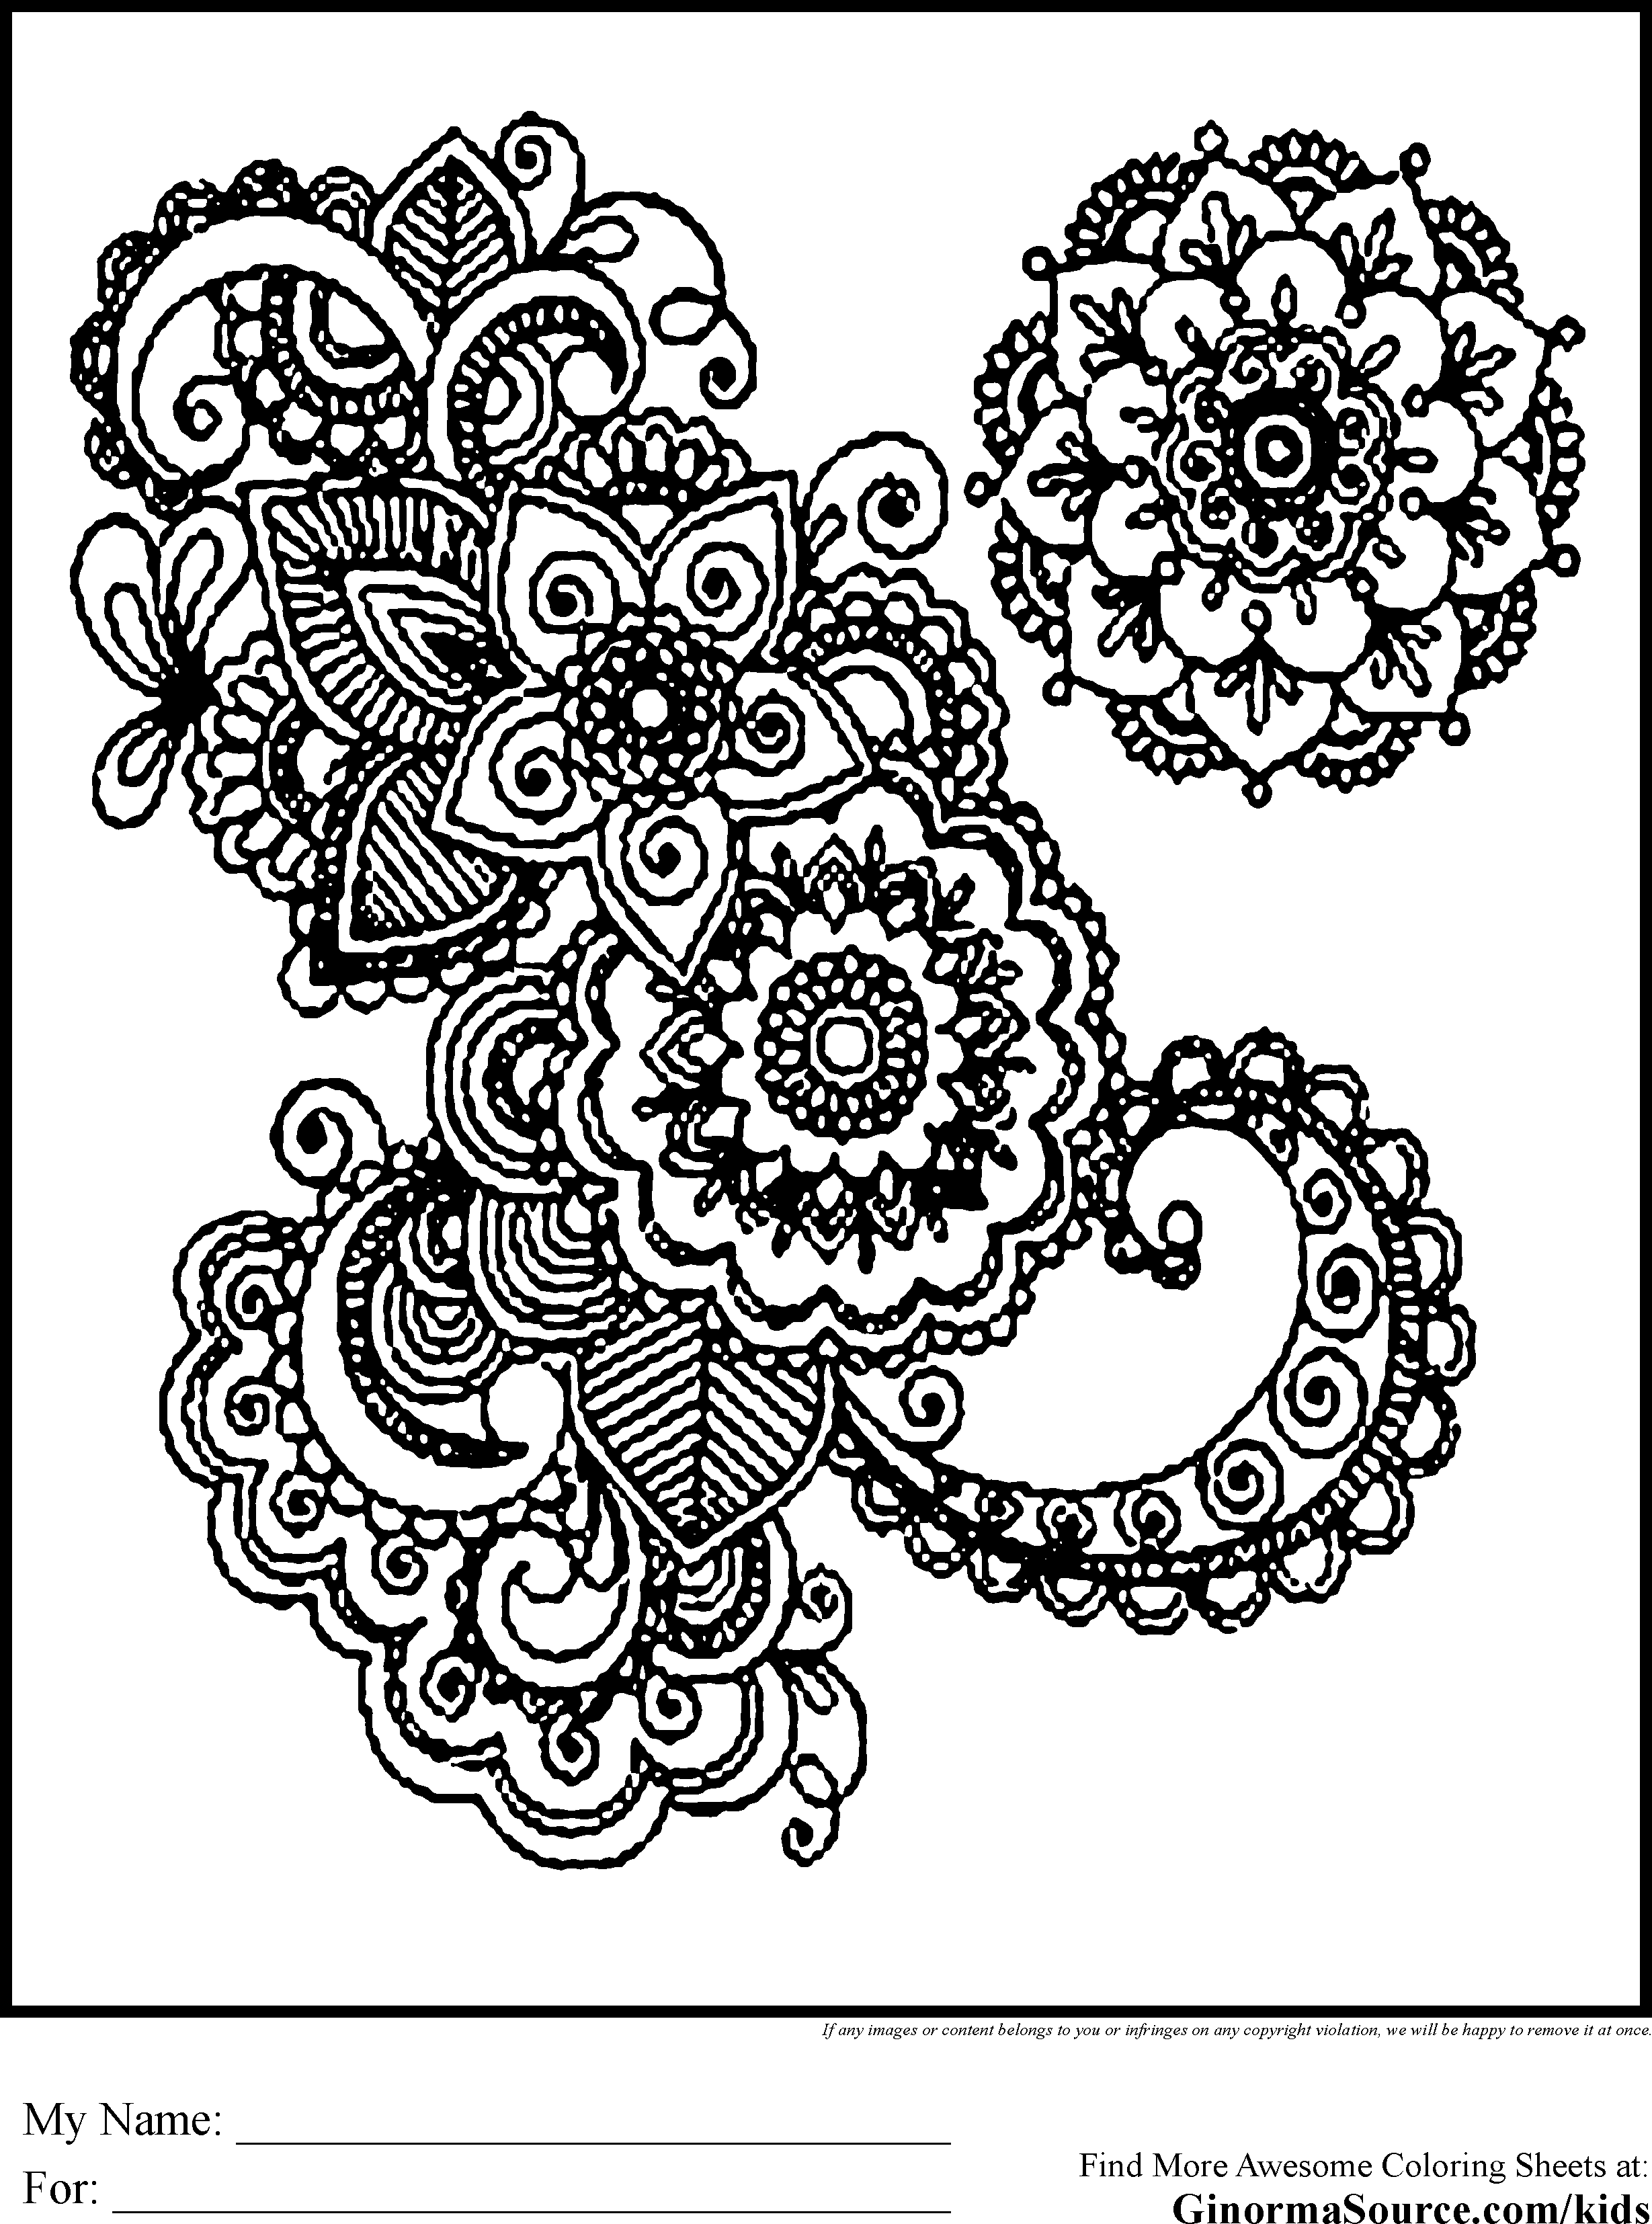 25 best coloring pages images on pinterest coloring books mandalas and coloring pages for adults